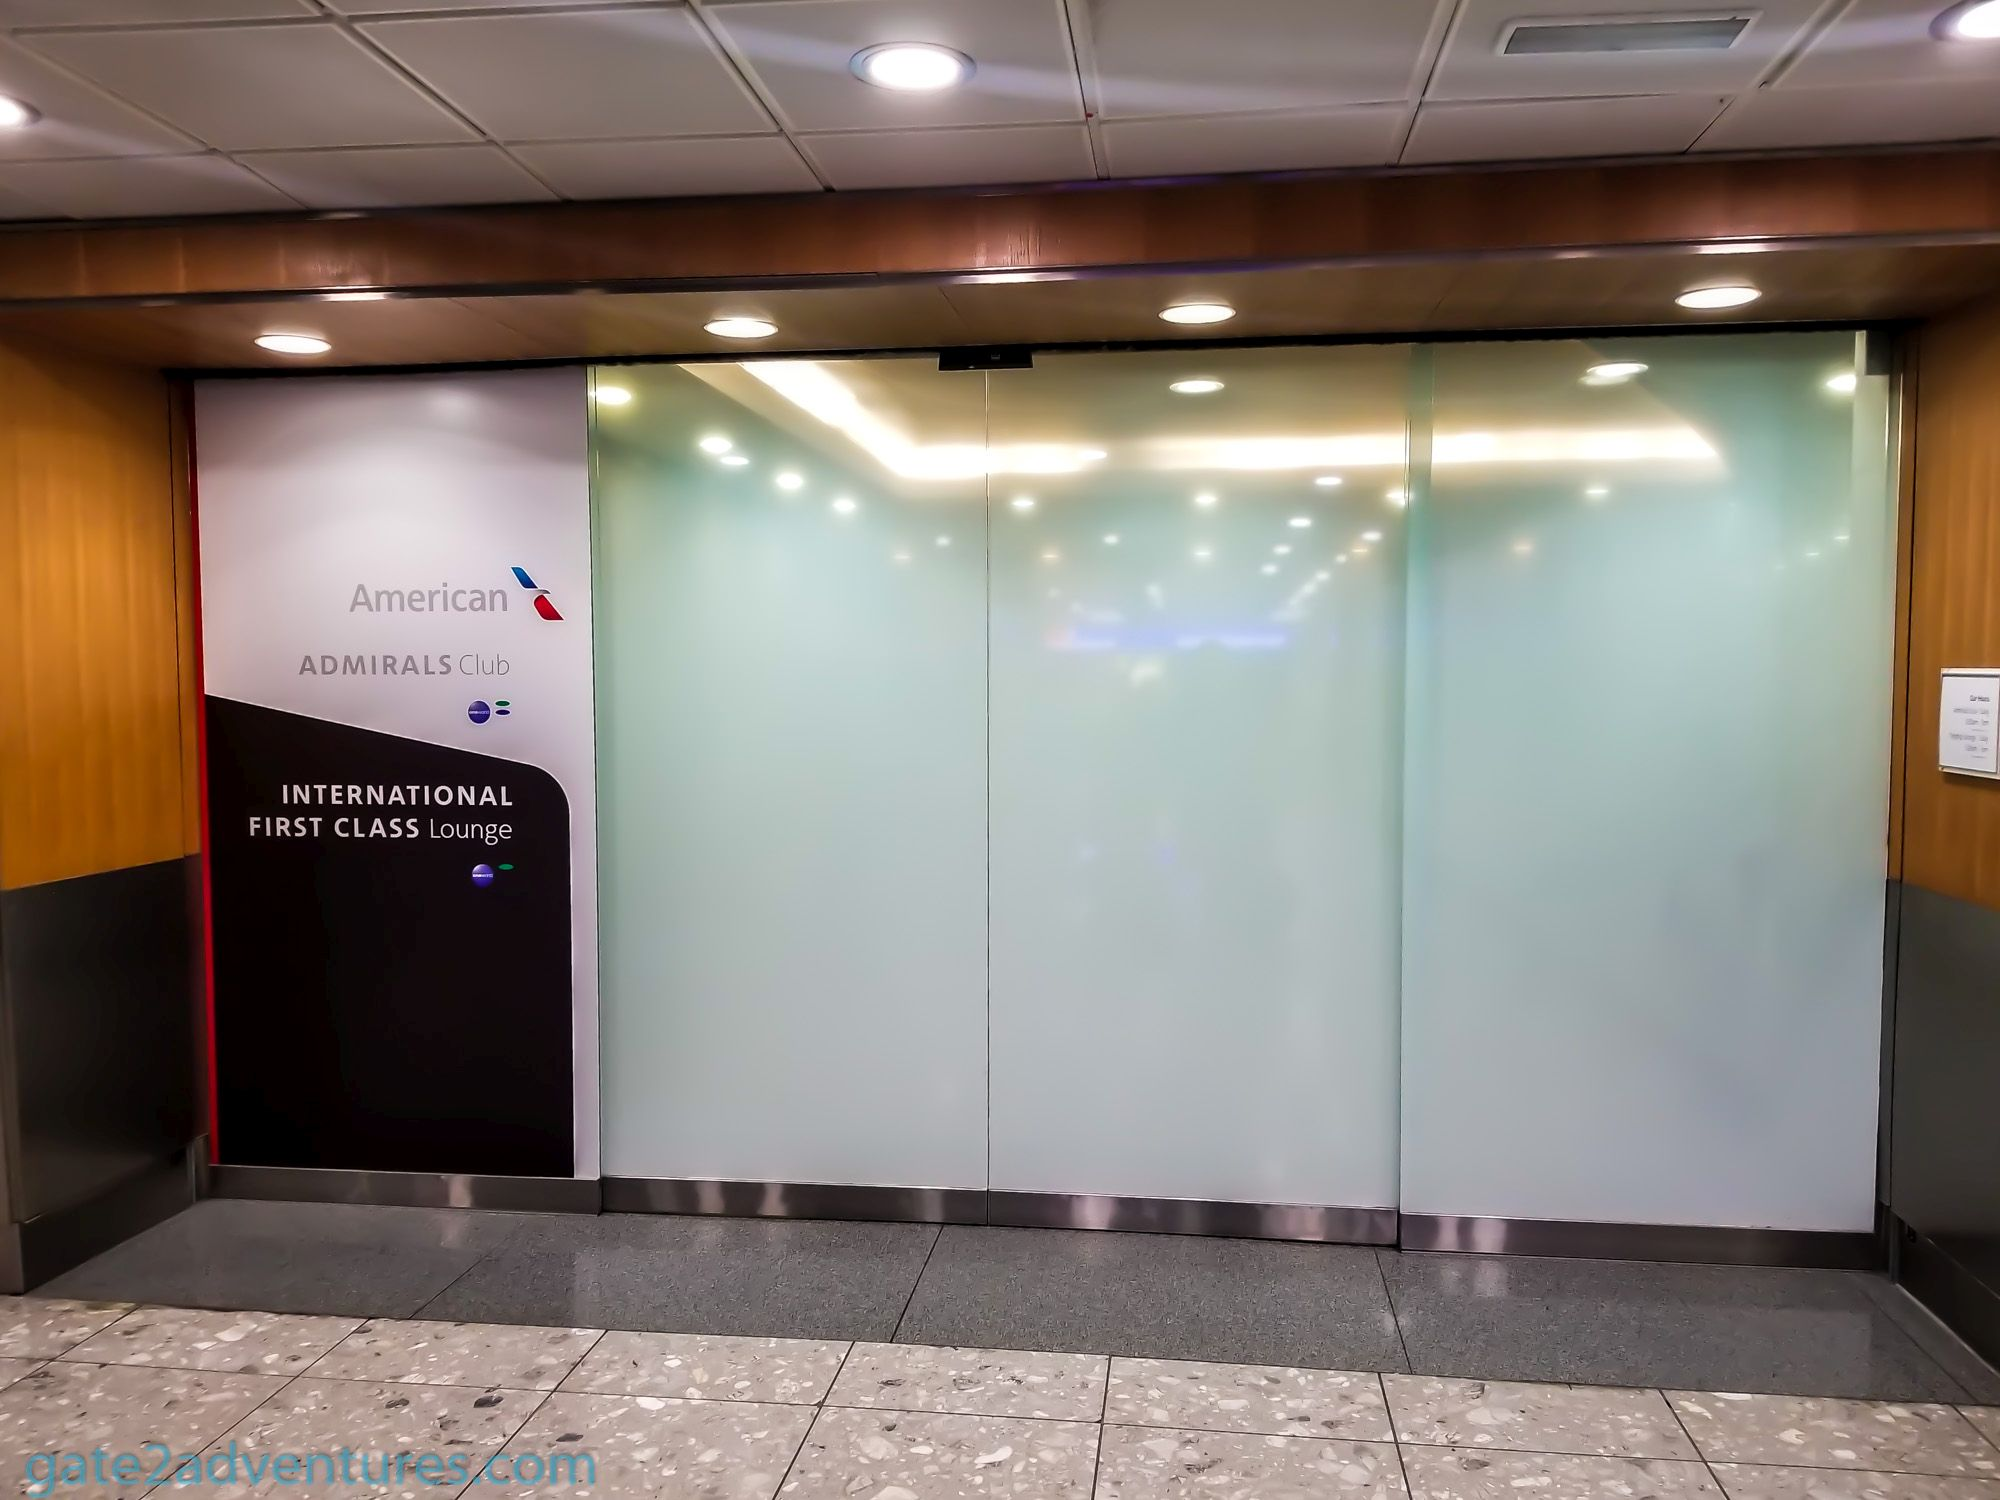 Lounge Review: American Airlines International First Class Lounge London Heathrow (LHR)